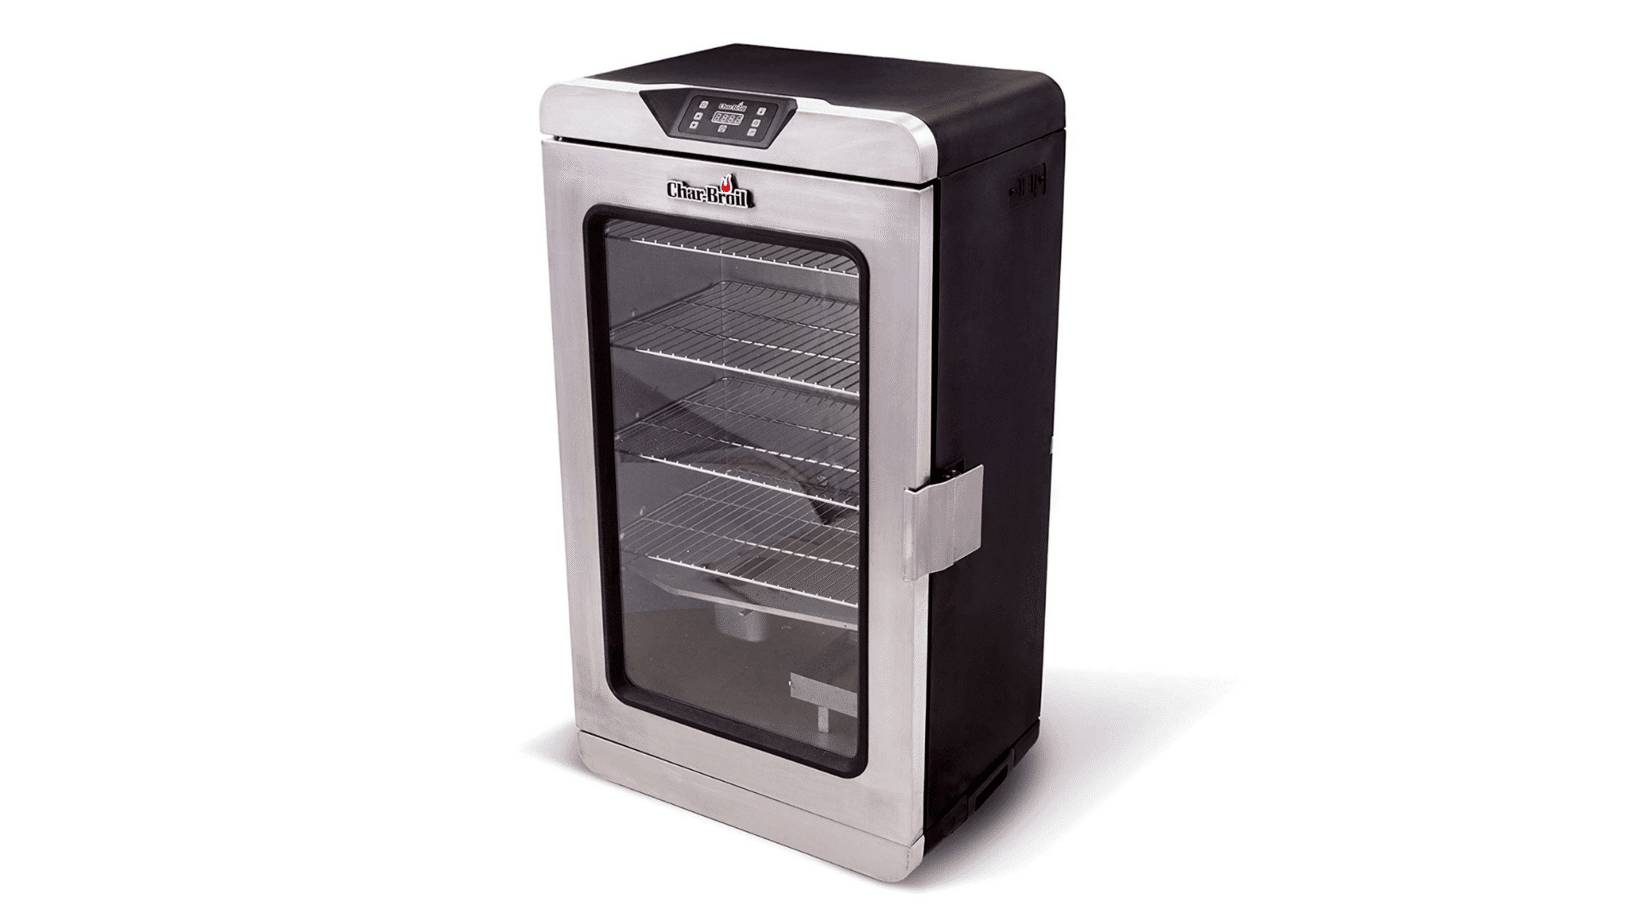 product image of Char-Broil Deluxe Digital Electric Smoker, 1000 Square Inch